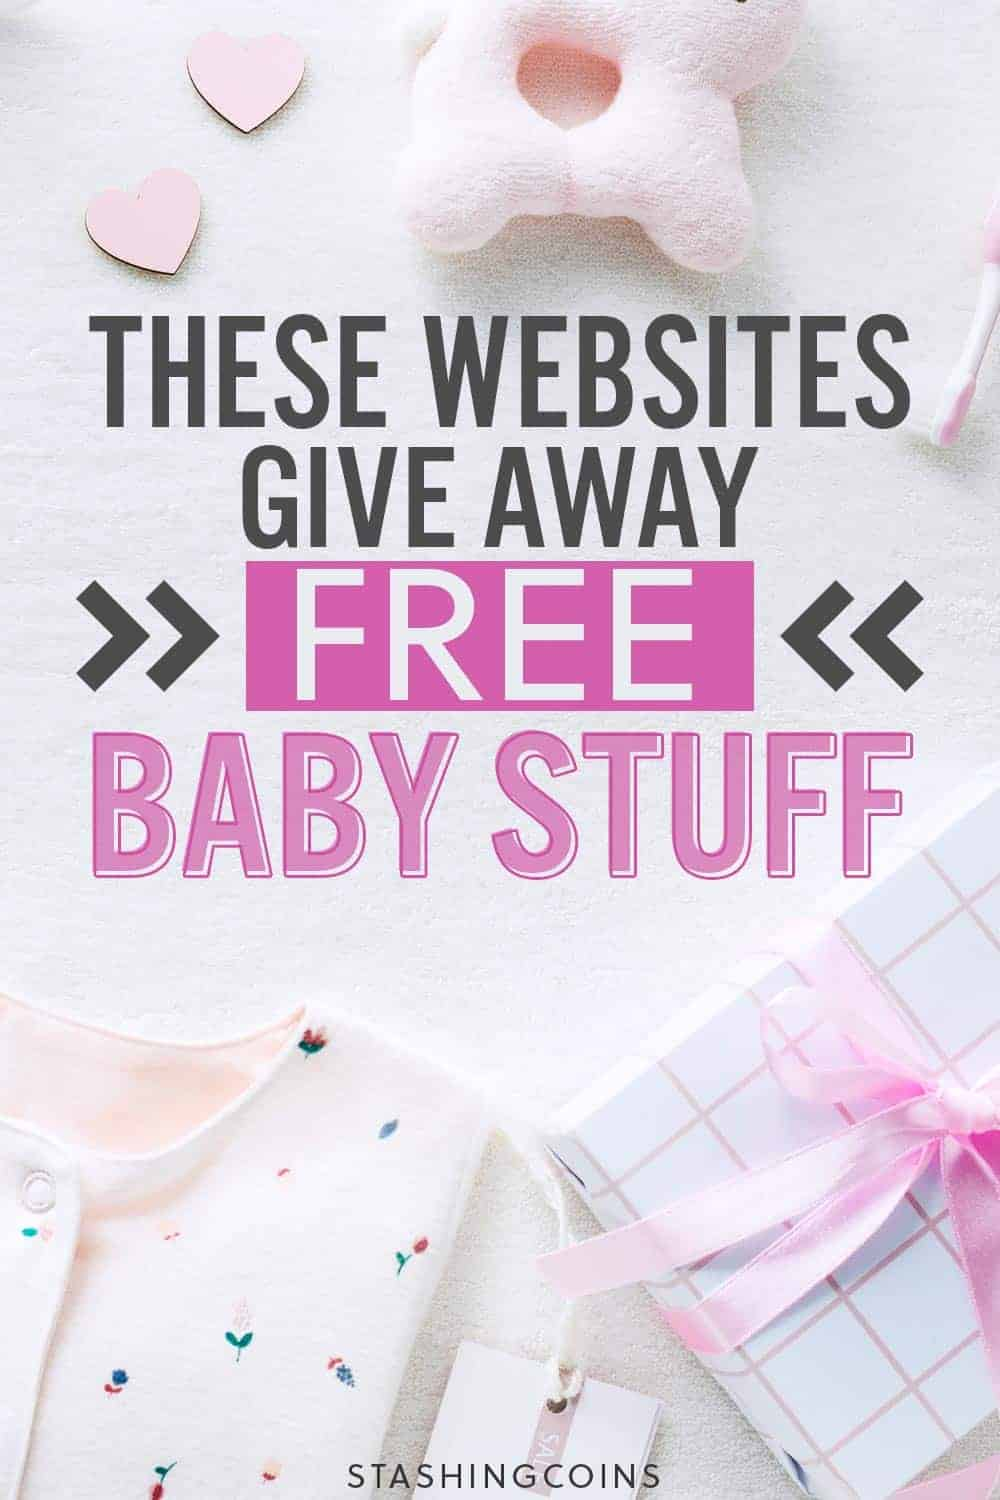 Websites that give away free baby stuff